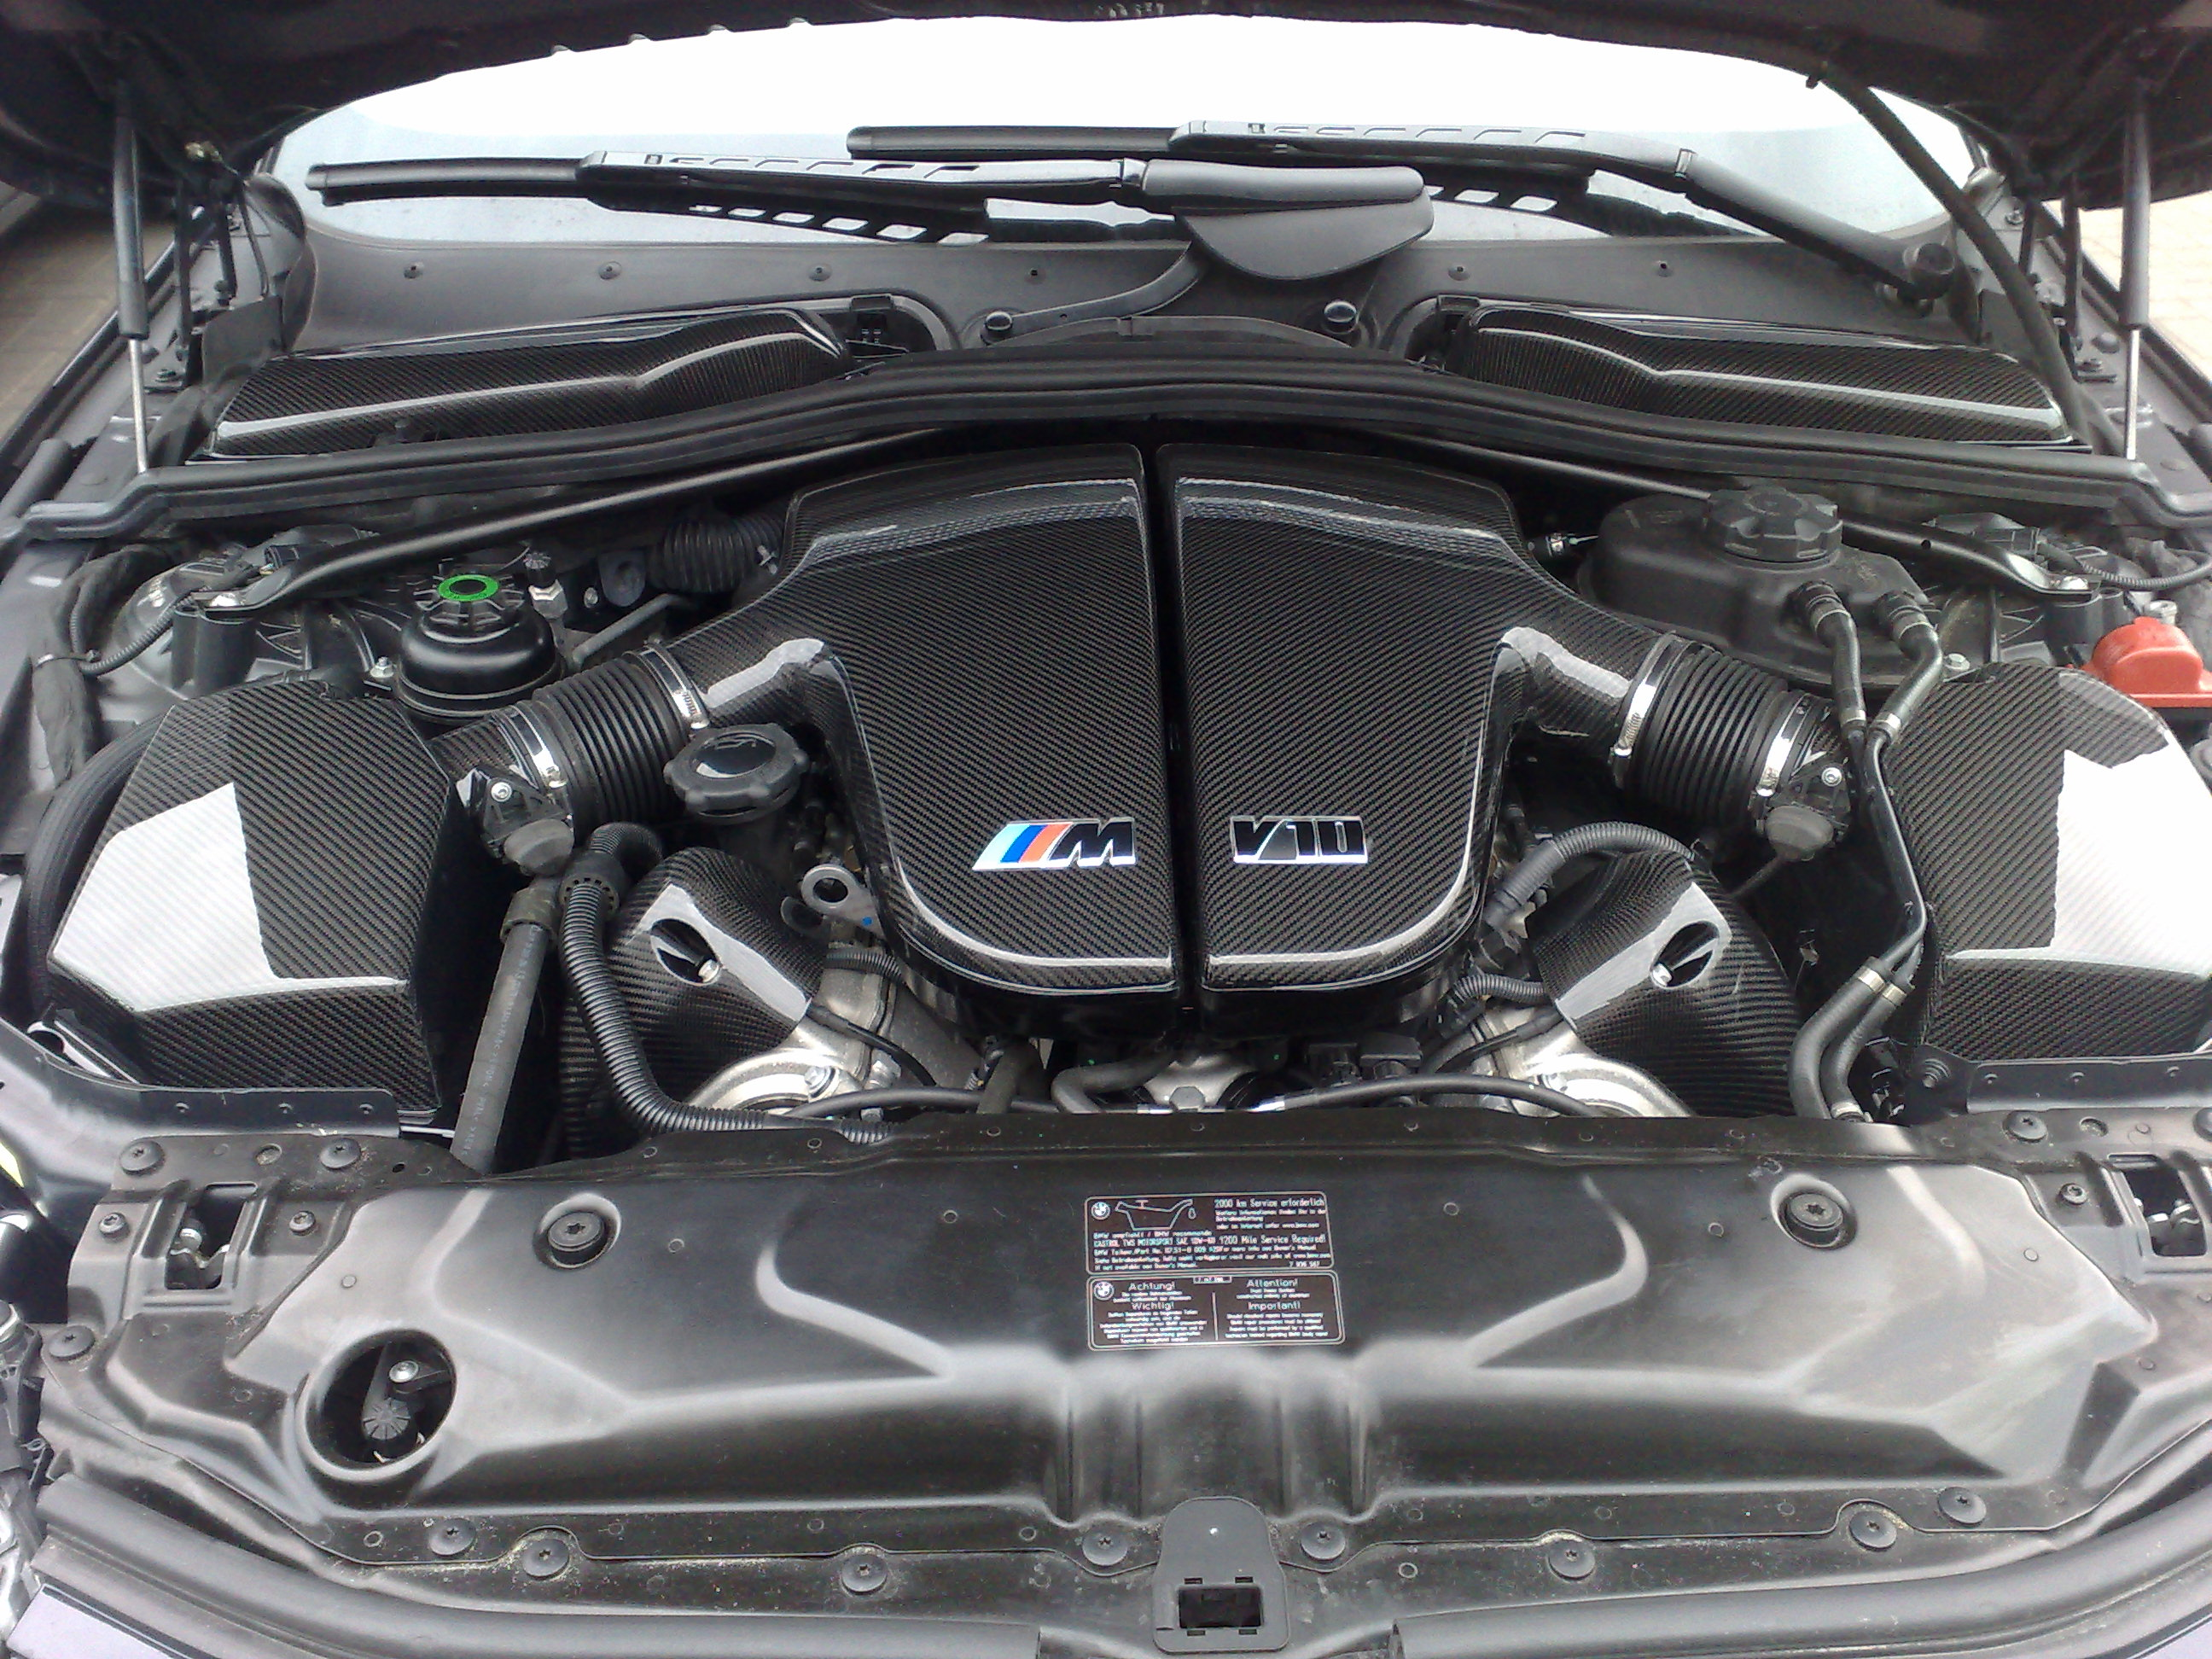 Carbon Fibre In Engine Bay Pics Bmw M5 Forum And M6 Forums